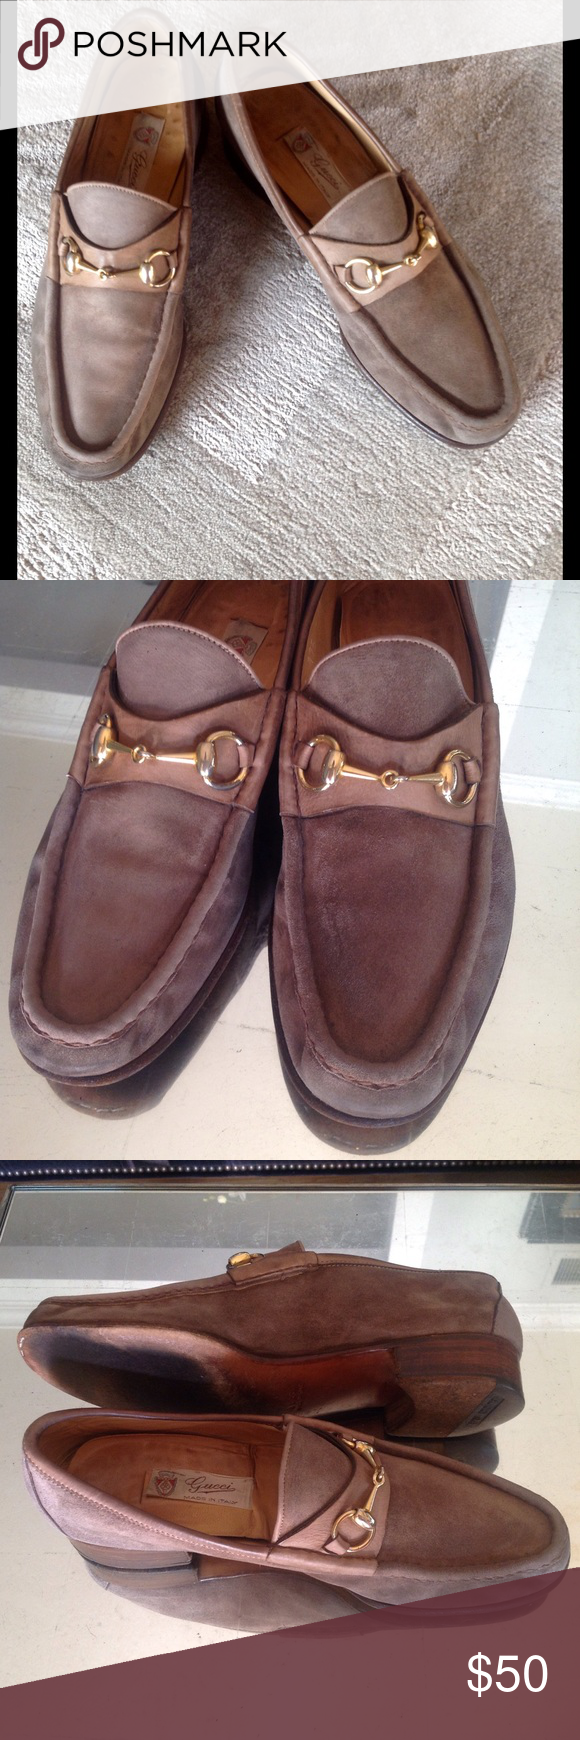 7a1f5002c6a Authentic Gucci Loafers Classic suede loafers with Gucci horsebit detail.  Pre-loved but still have life. Tan suede